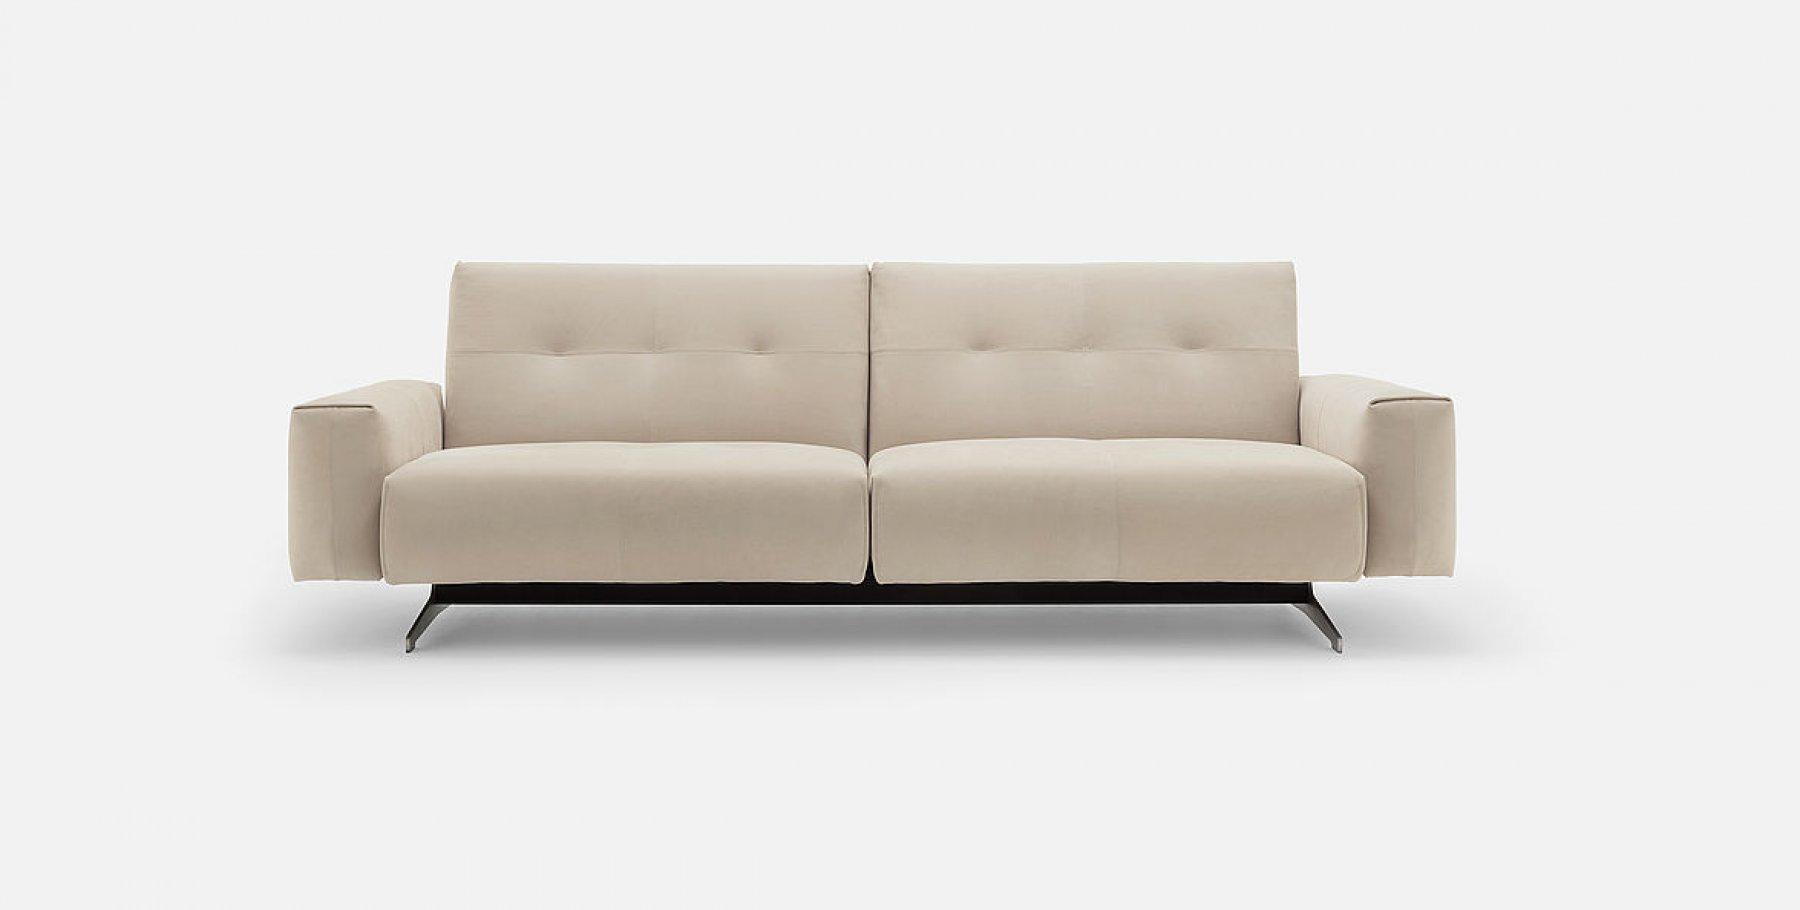 Rolf Benz Sofa Tondo 50 Sofa By Rolf Benz By Frobisher